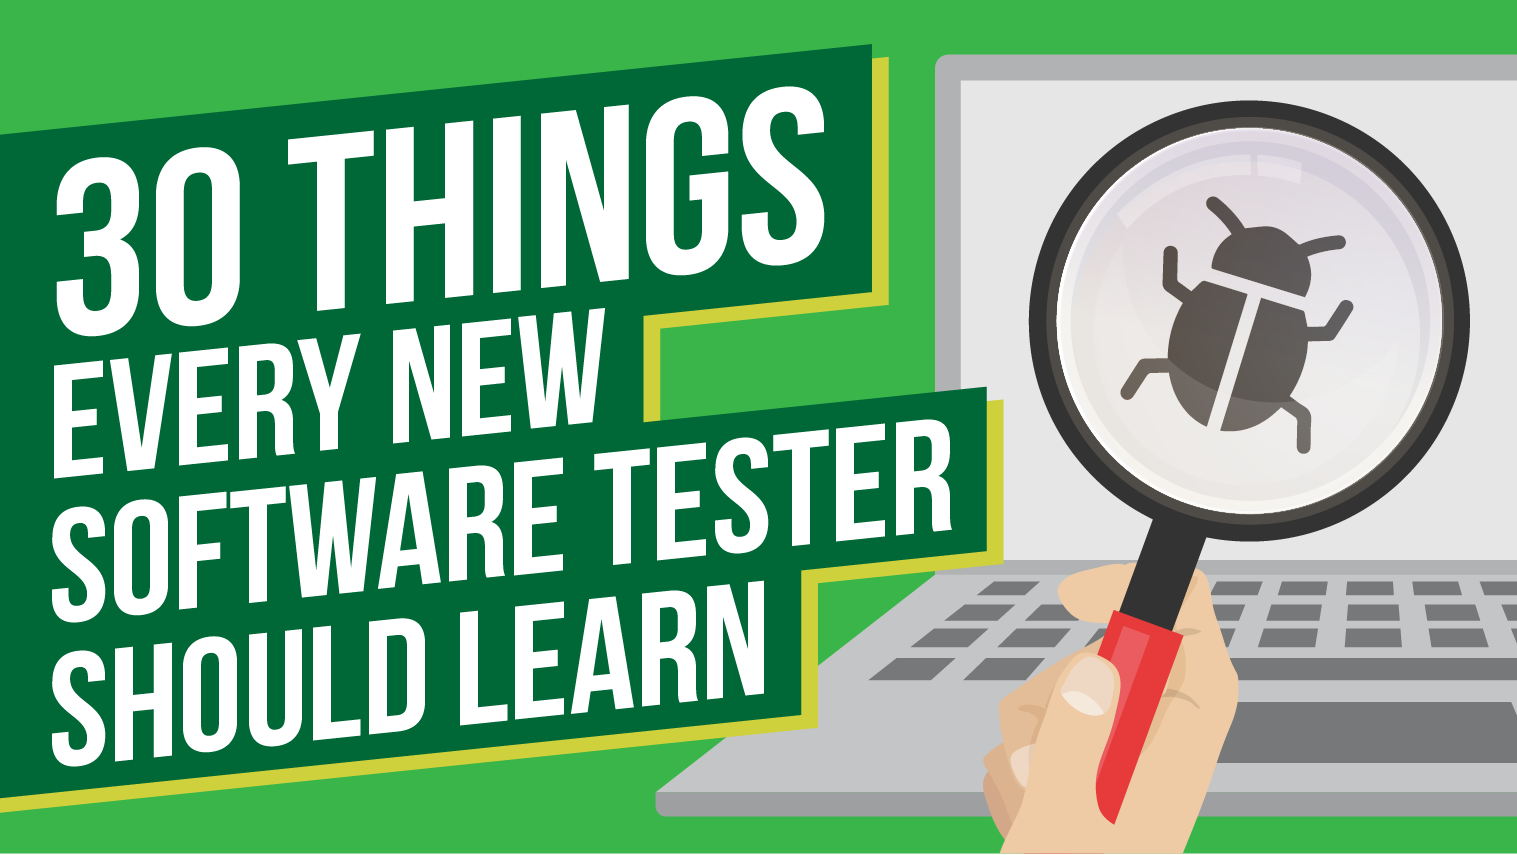 30 Things Every New Software Tester Should Learn